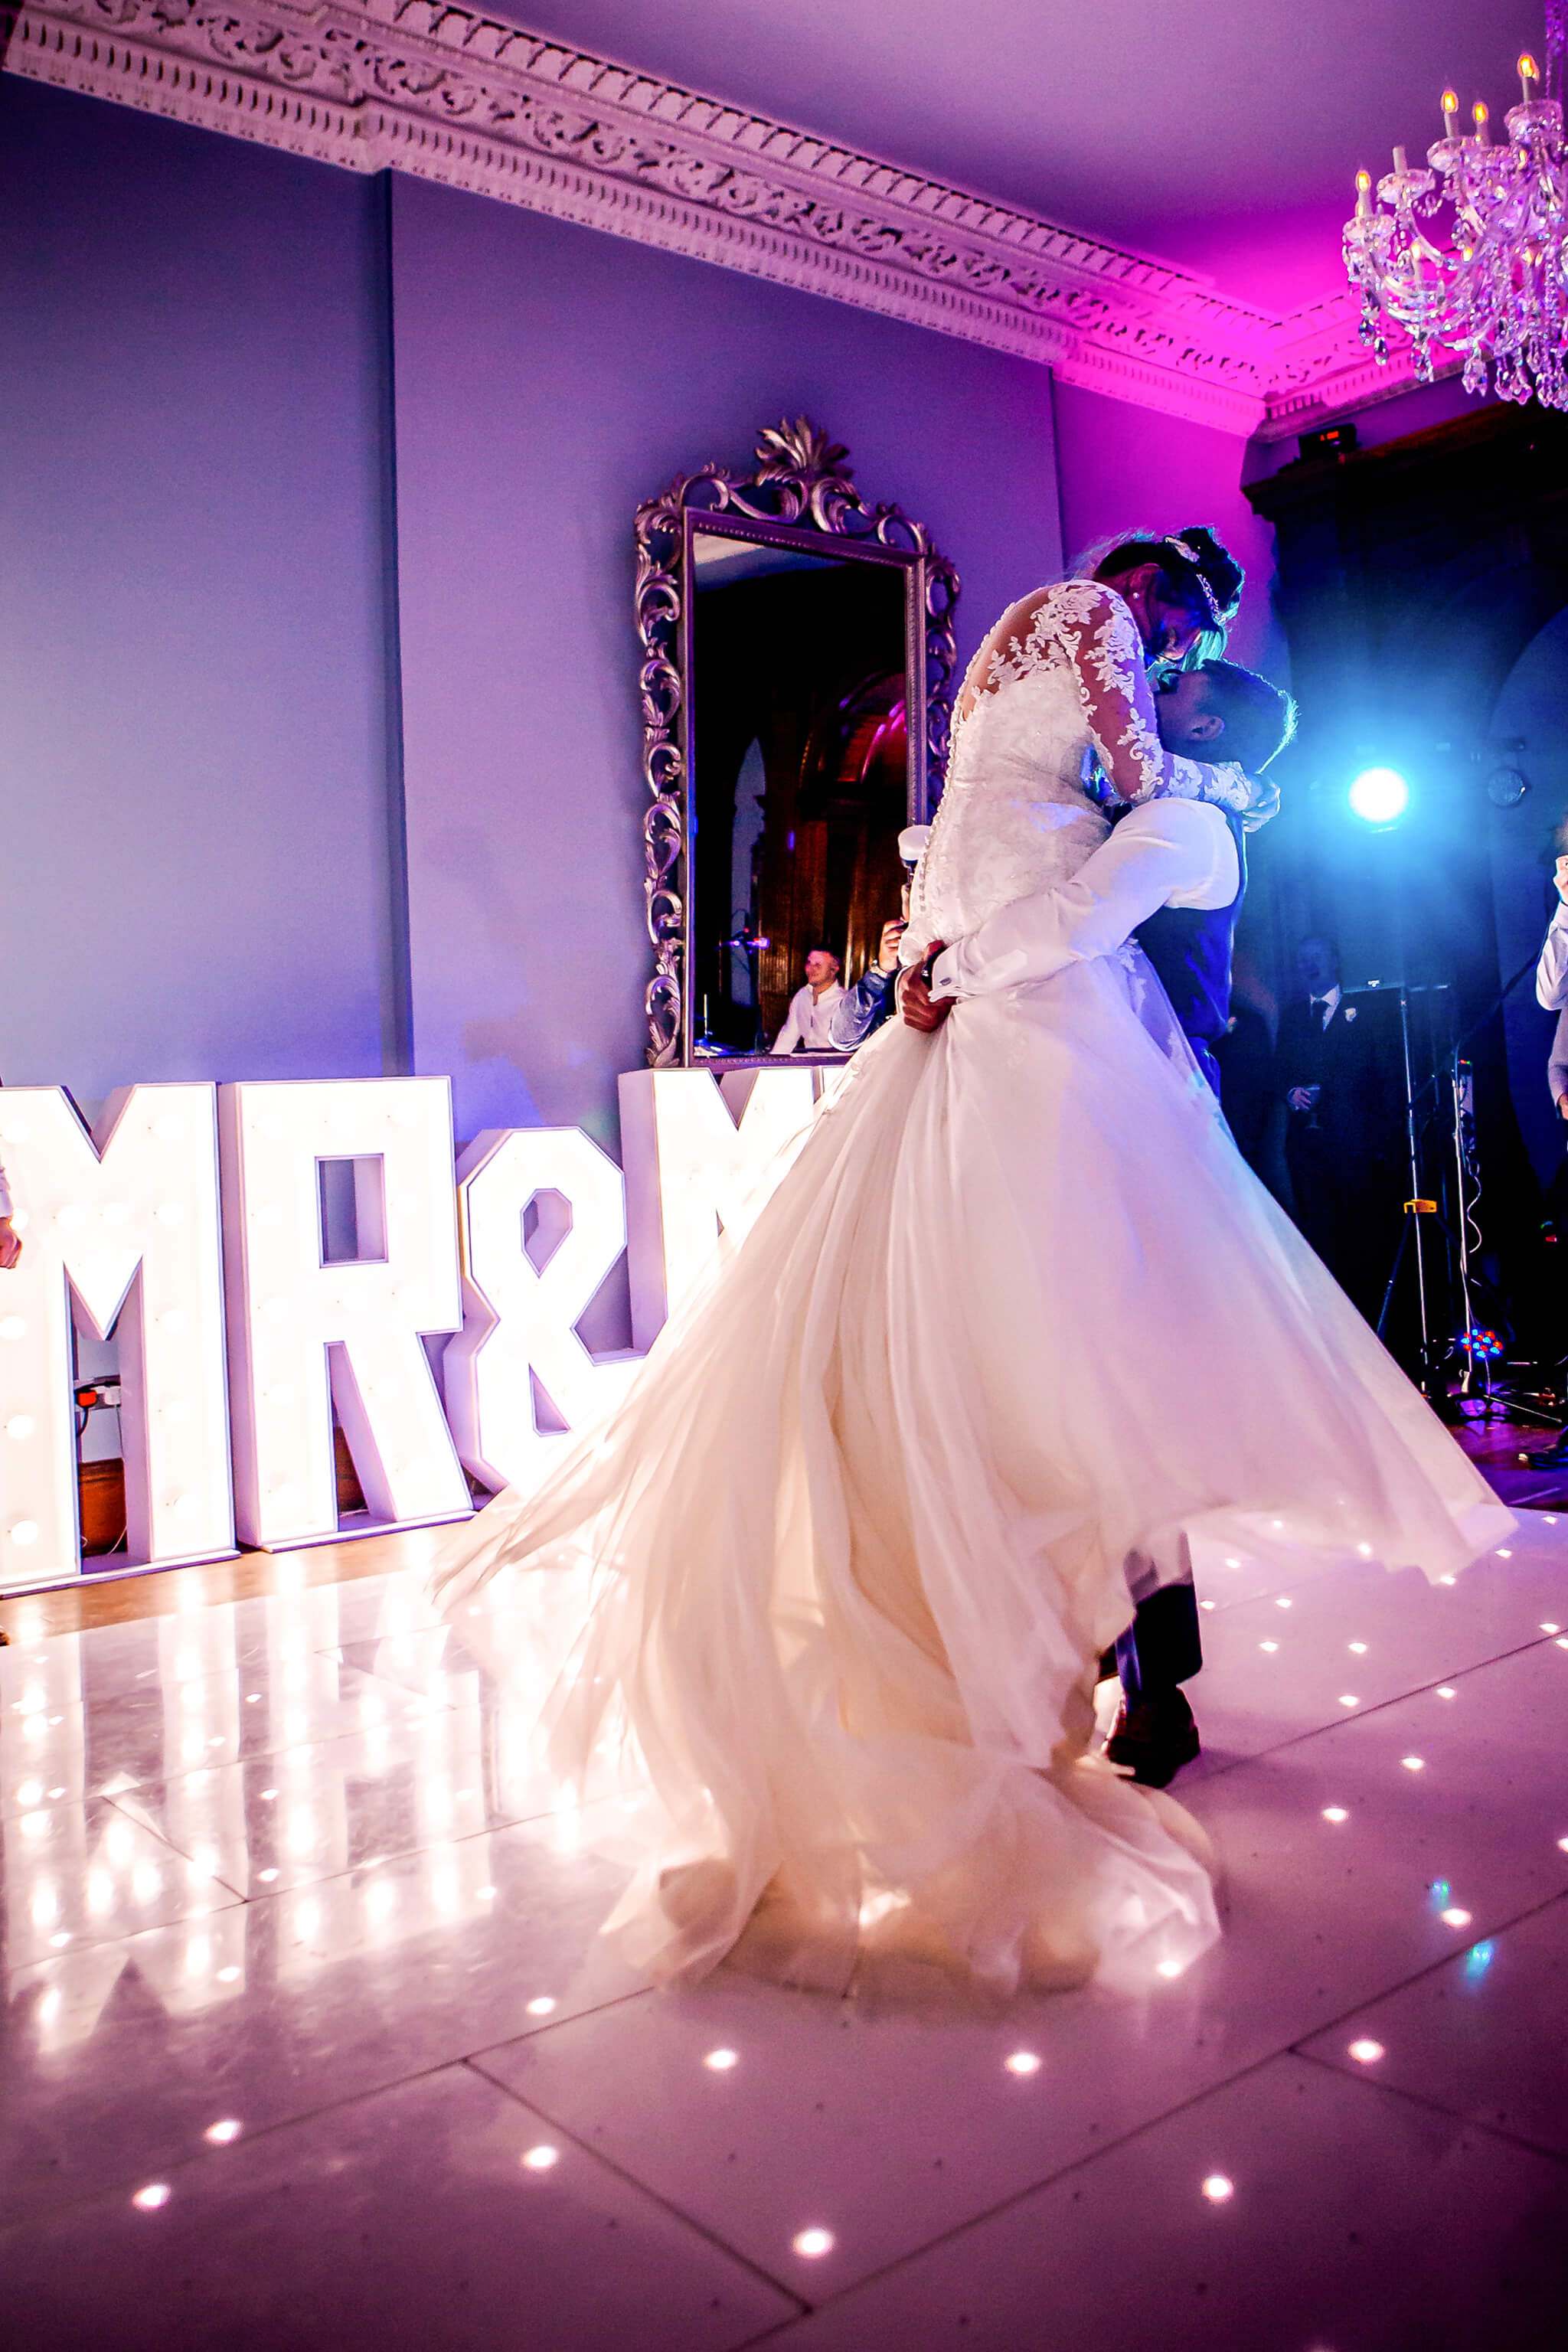 best-wedding-photographers-uk-europe-stanbury-photography-161